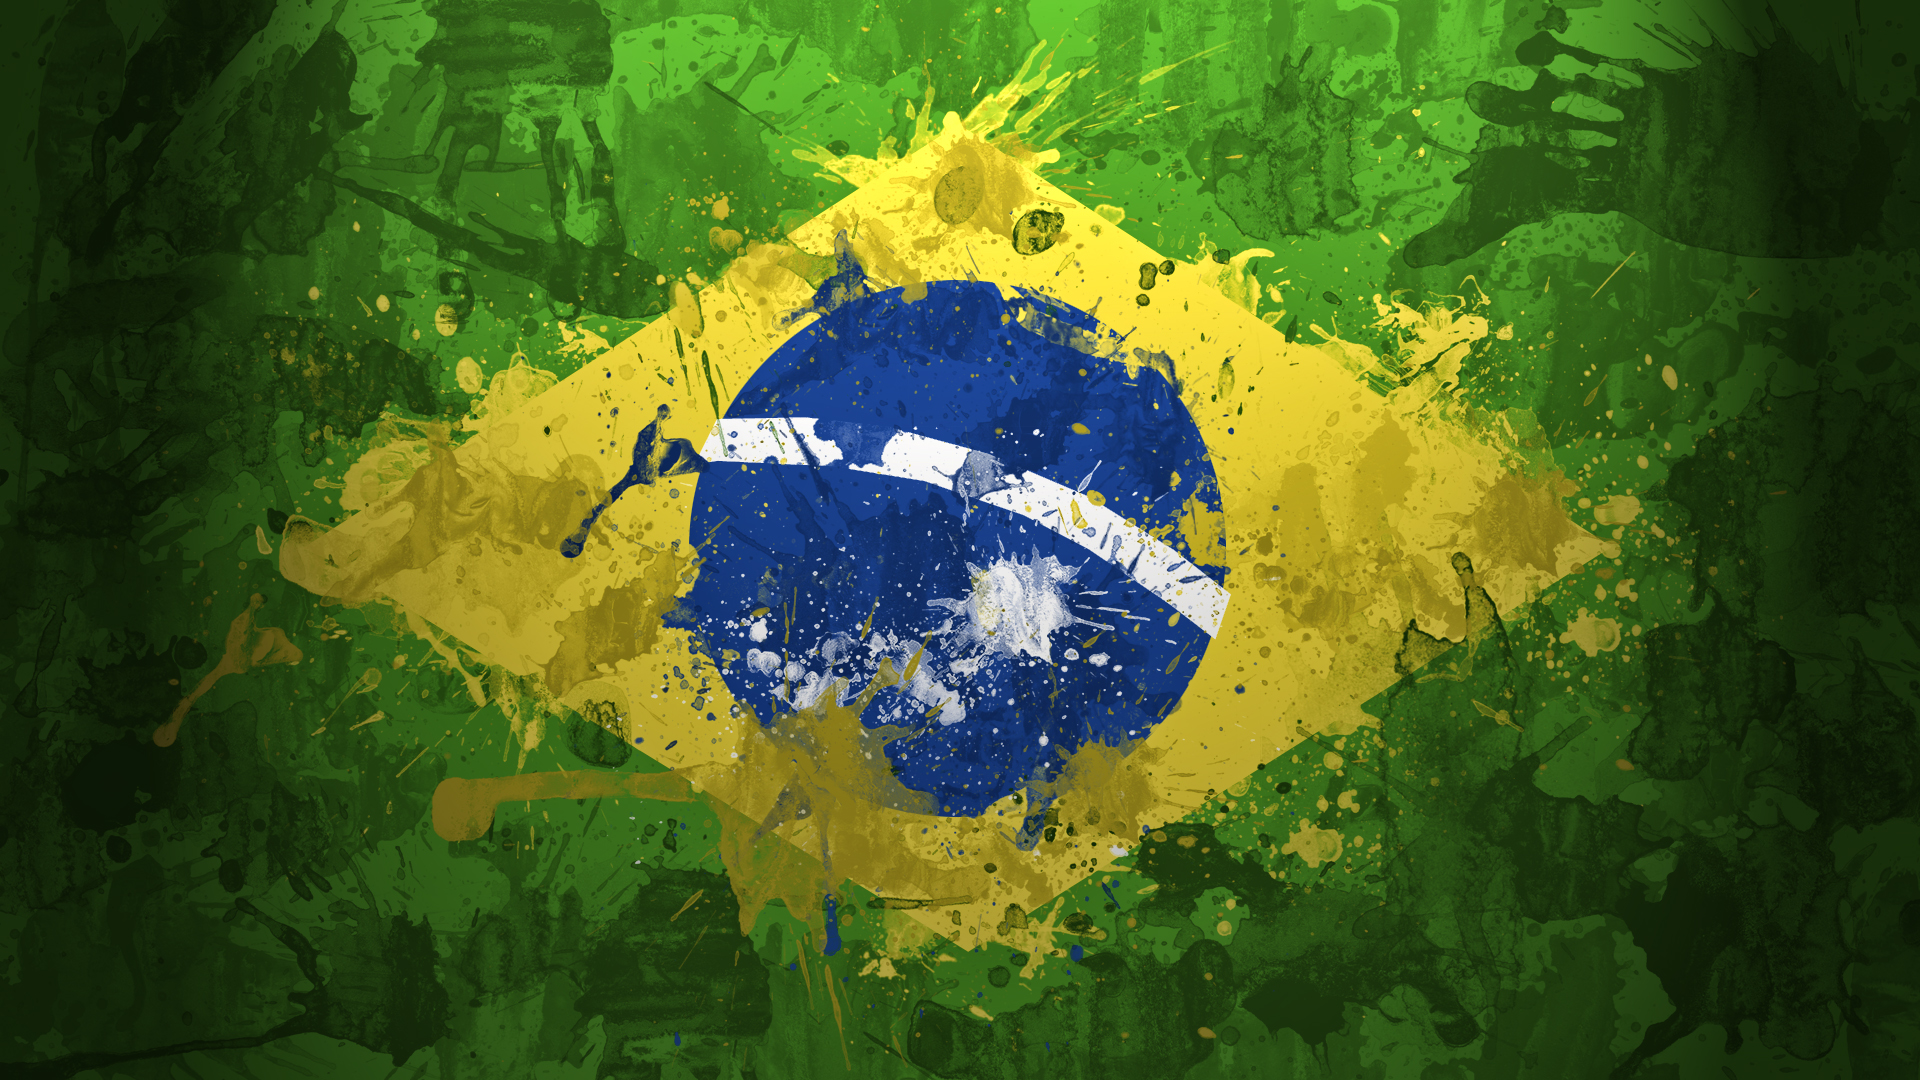 8tracks Radio Real Brazilian Music 13 Songs Free And Music Playlist